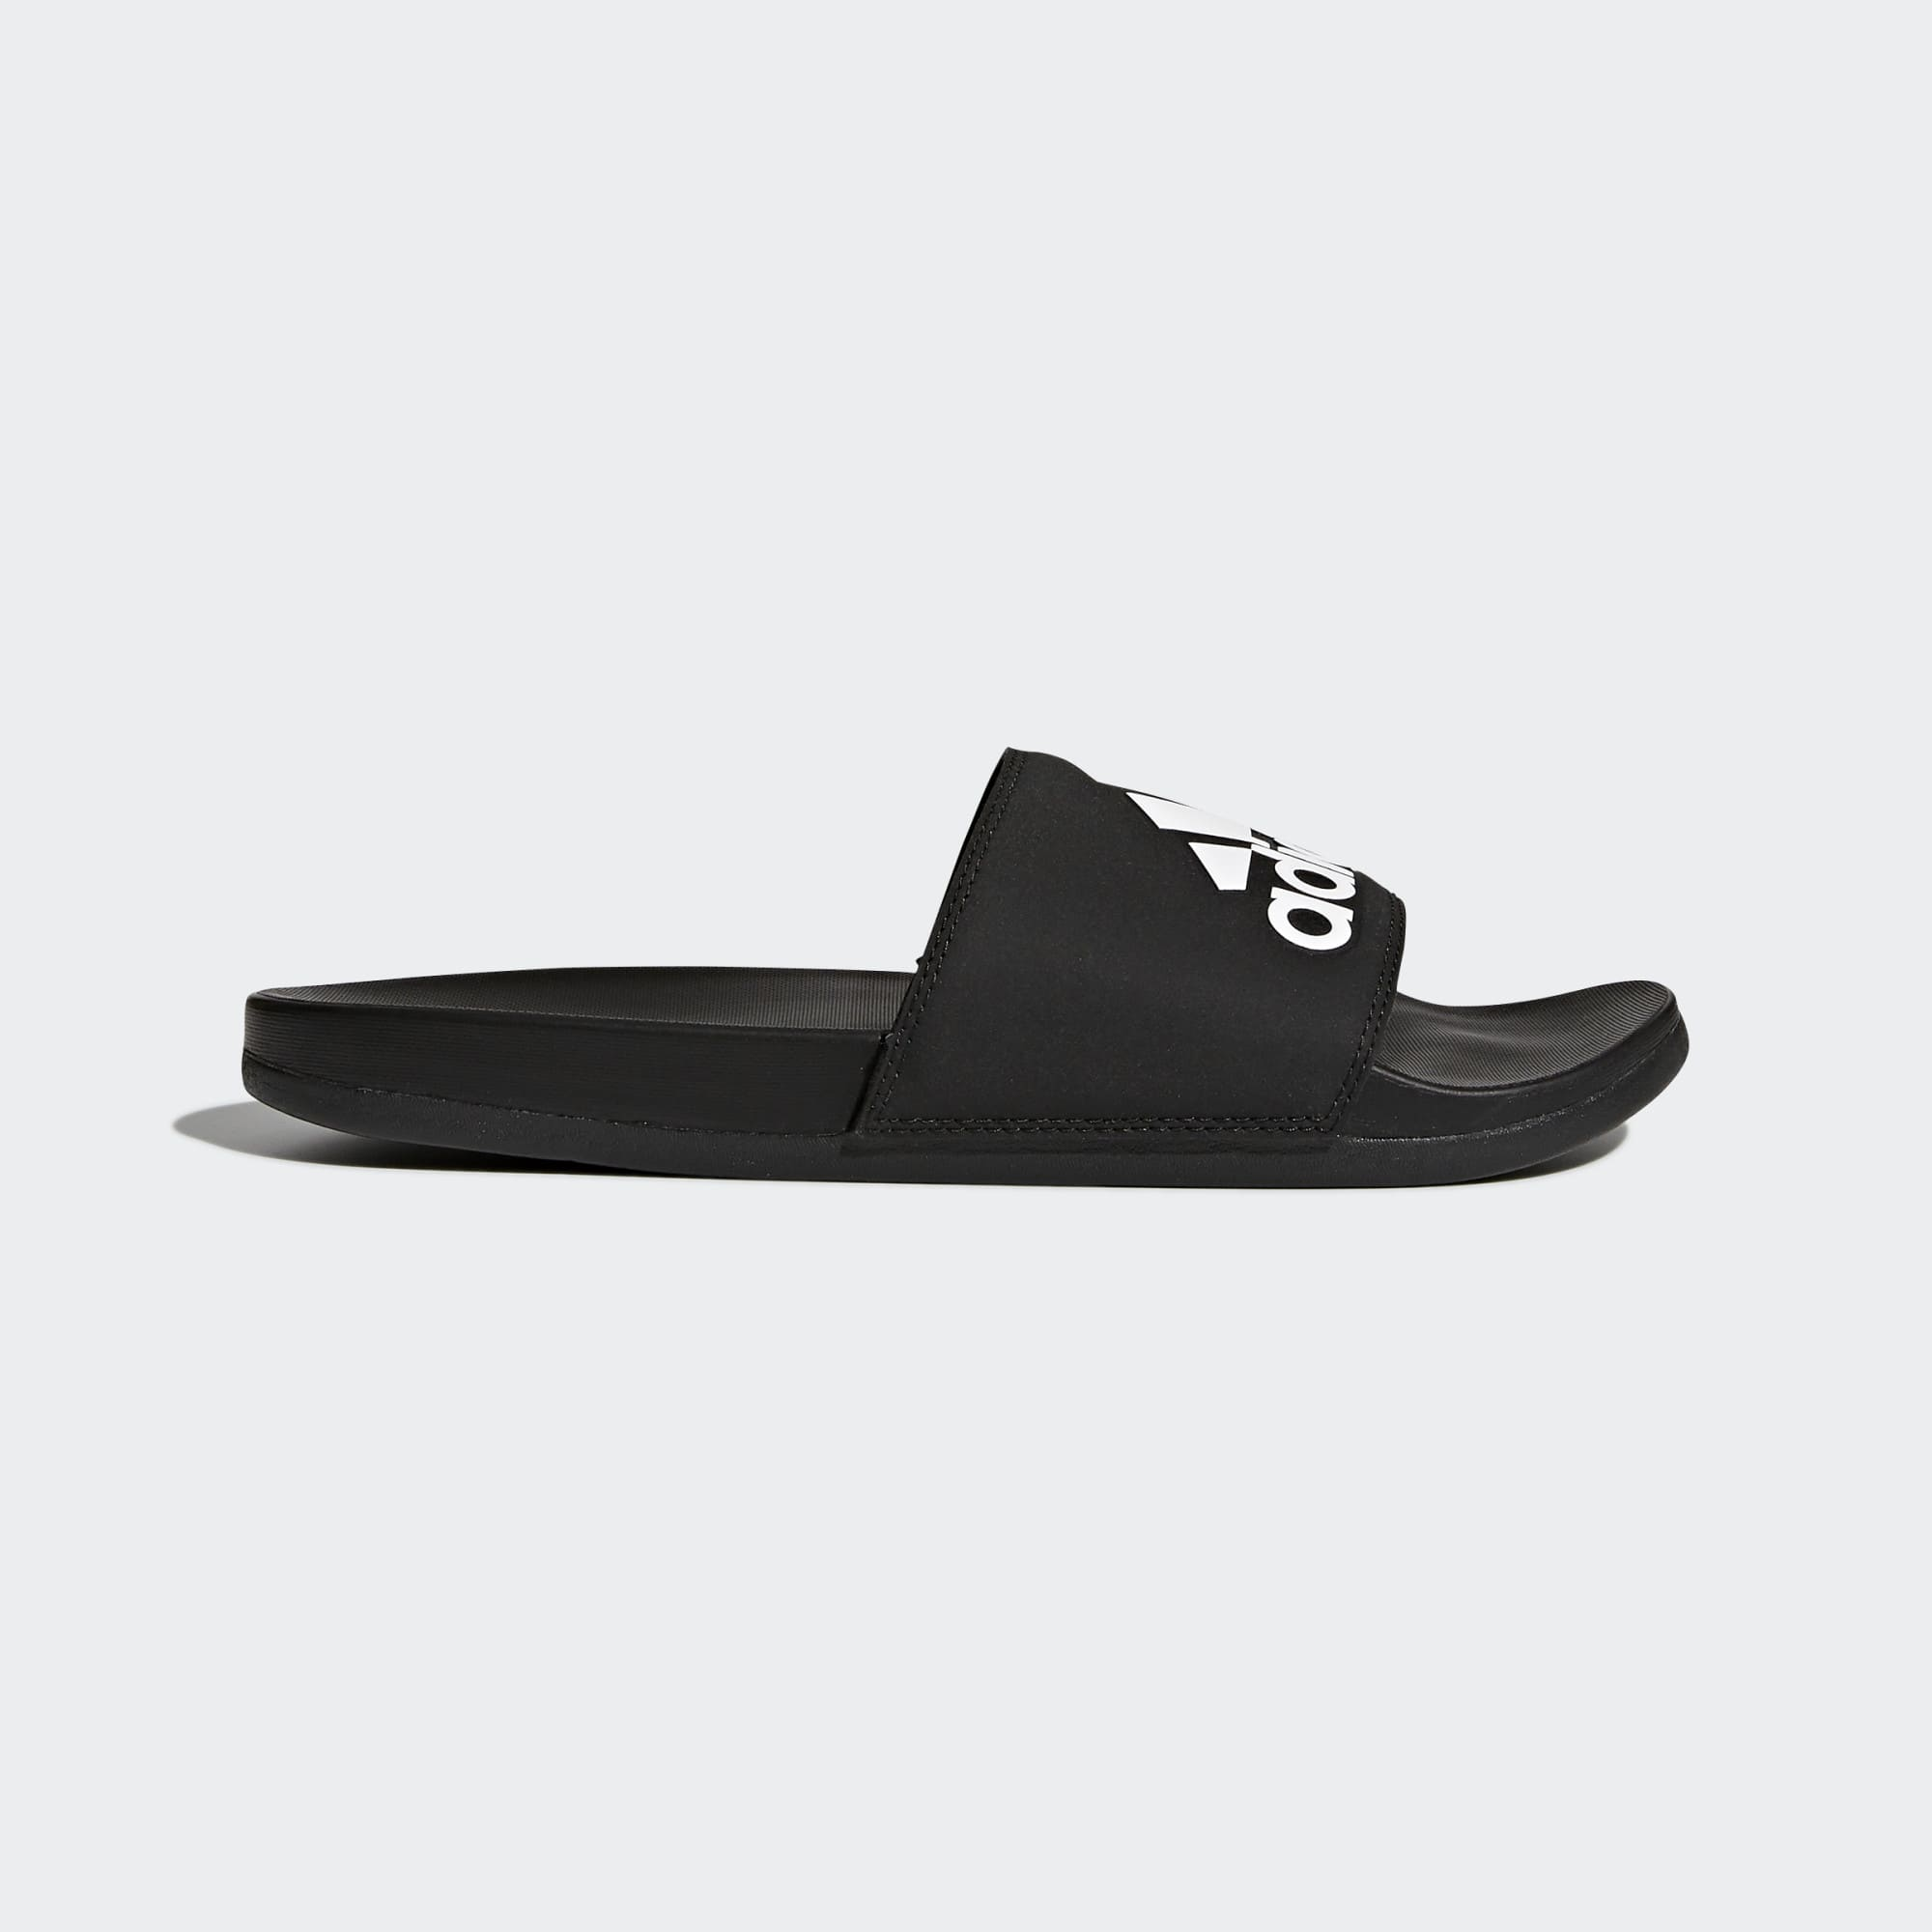 766802625 ... adidas Men s Adilette Cloudfoam Plus Mono Slides (various colors)   15.30. Deal Image. Deal Image